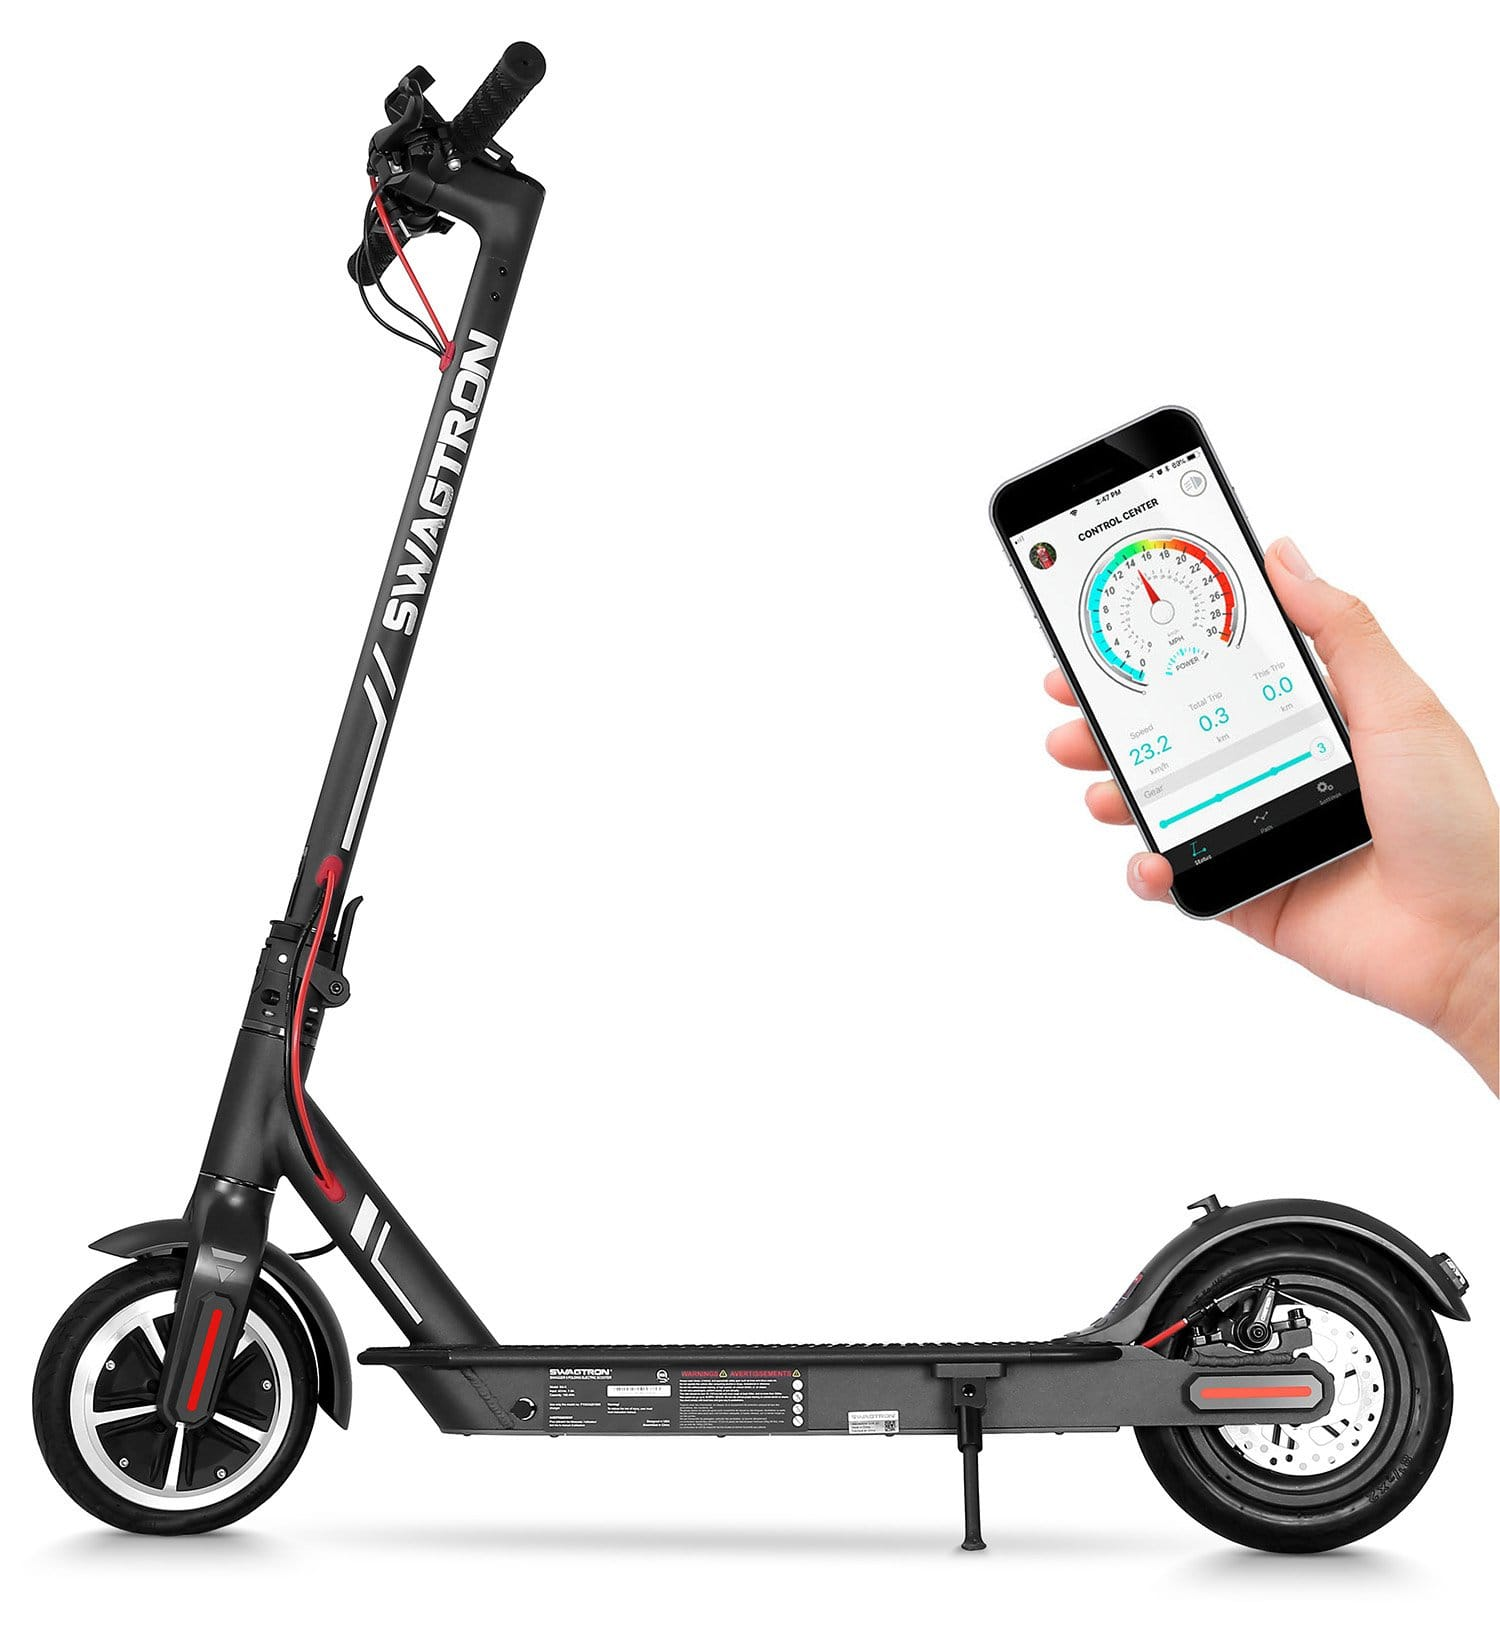 Swagtron Swagger 5 Electric Scooter Review 2021